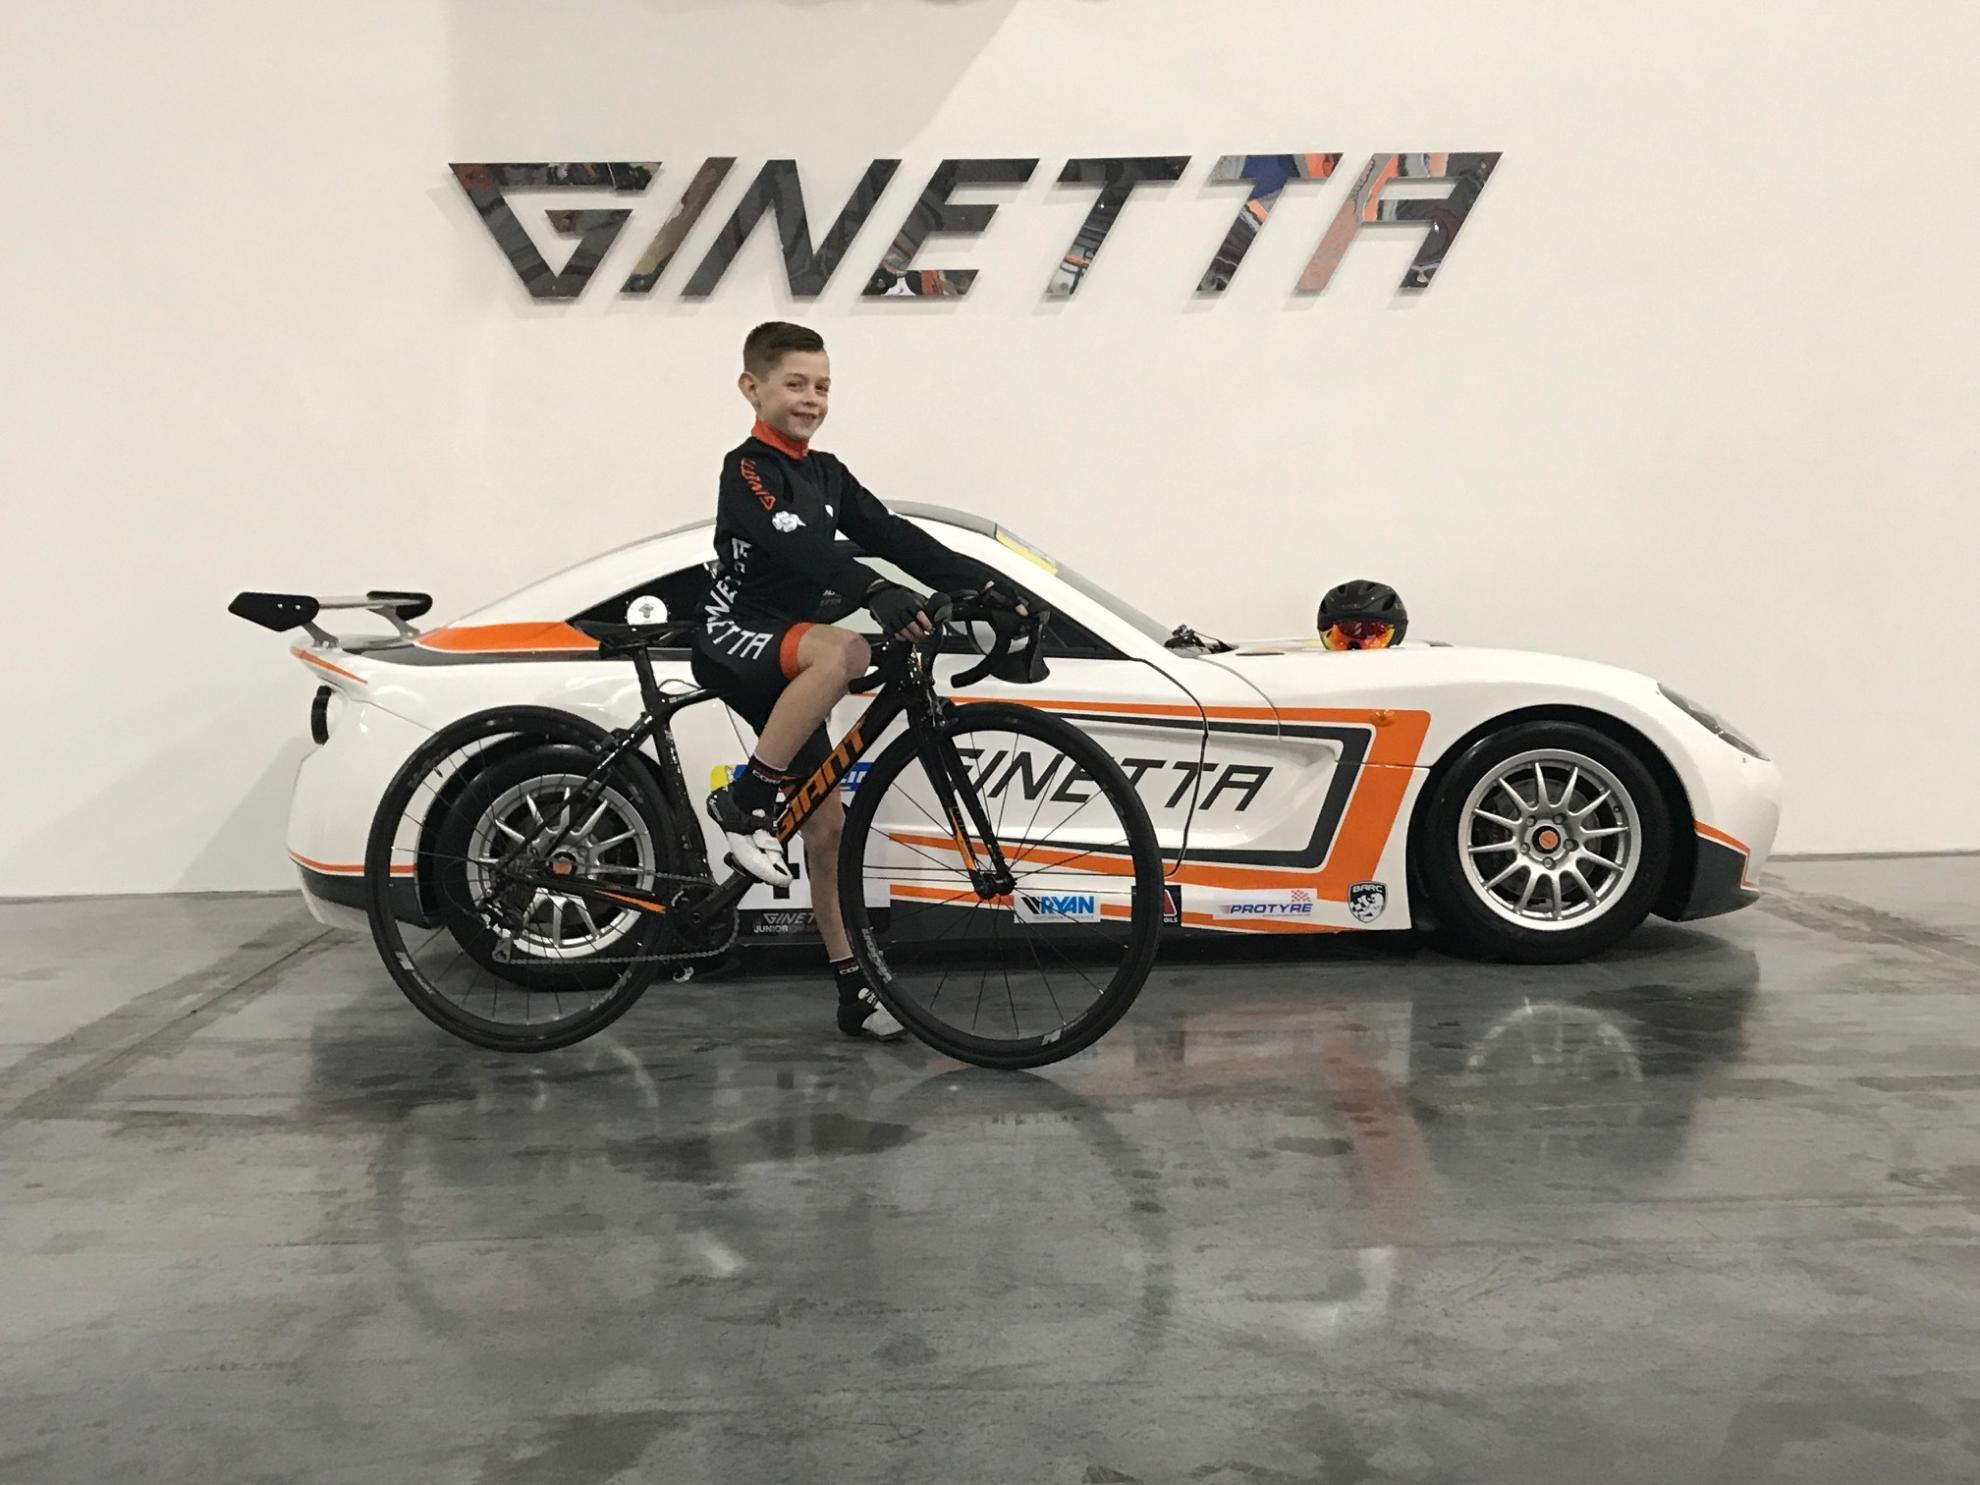 Ginetta Sponsors Local Garforth Youth Cyclist